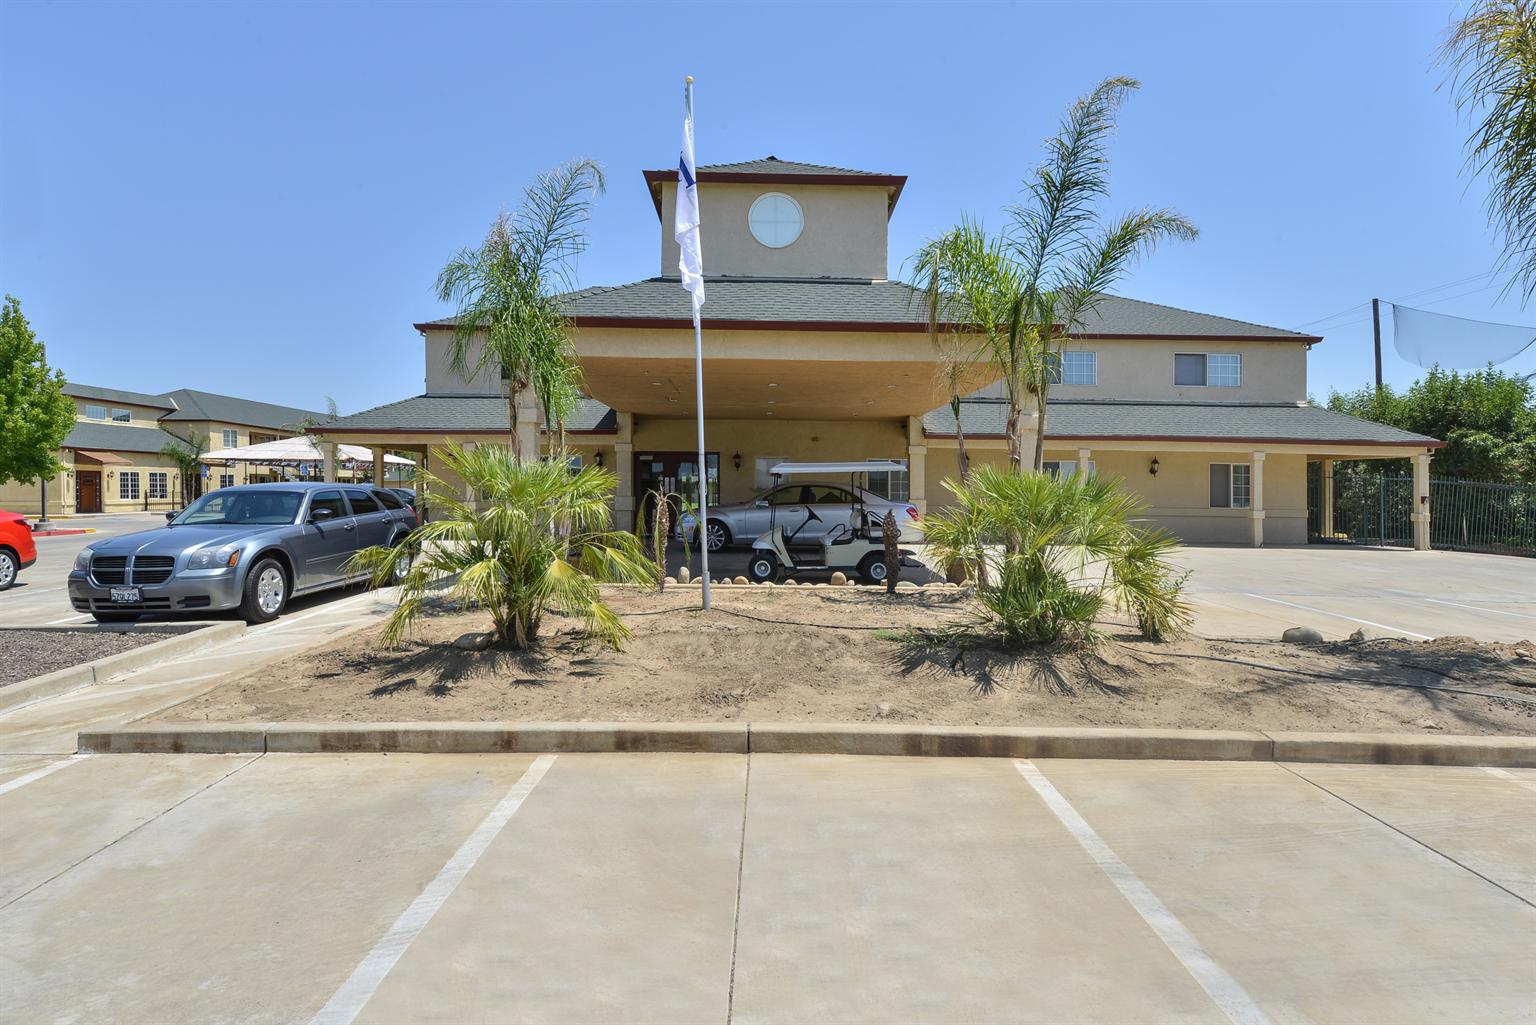 Lexington Inn & Suites - Yuba City